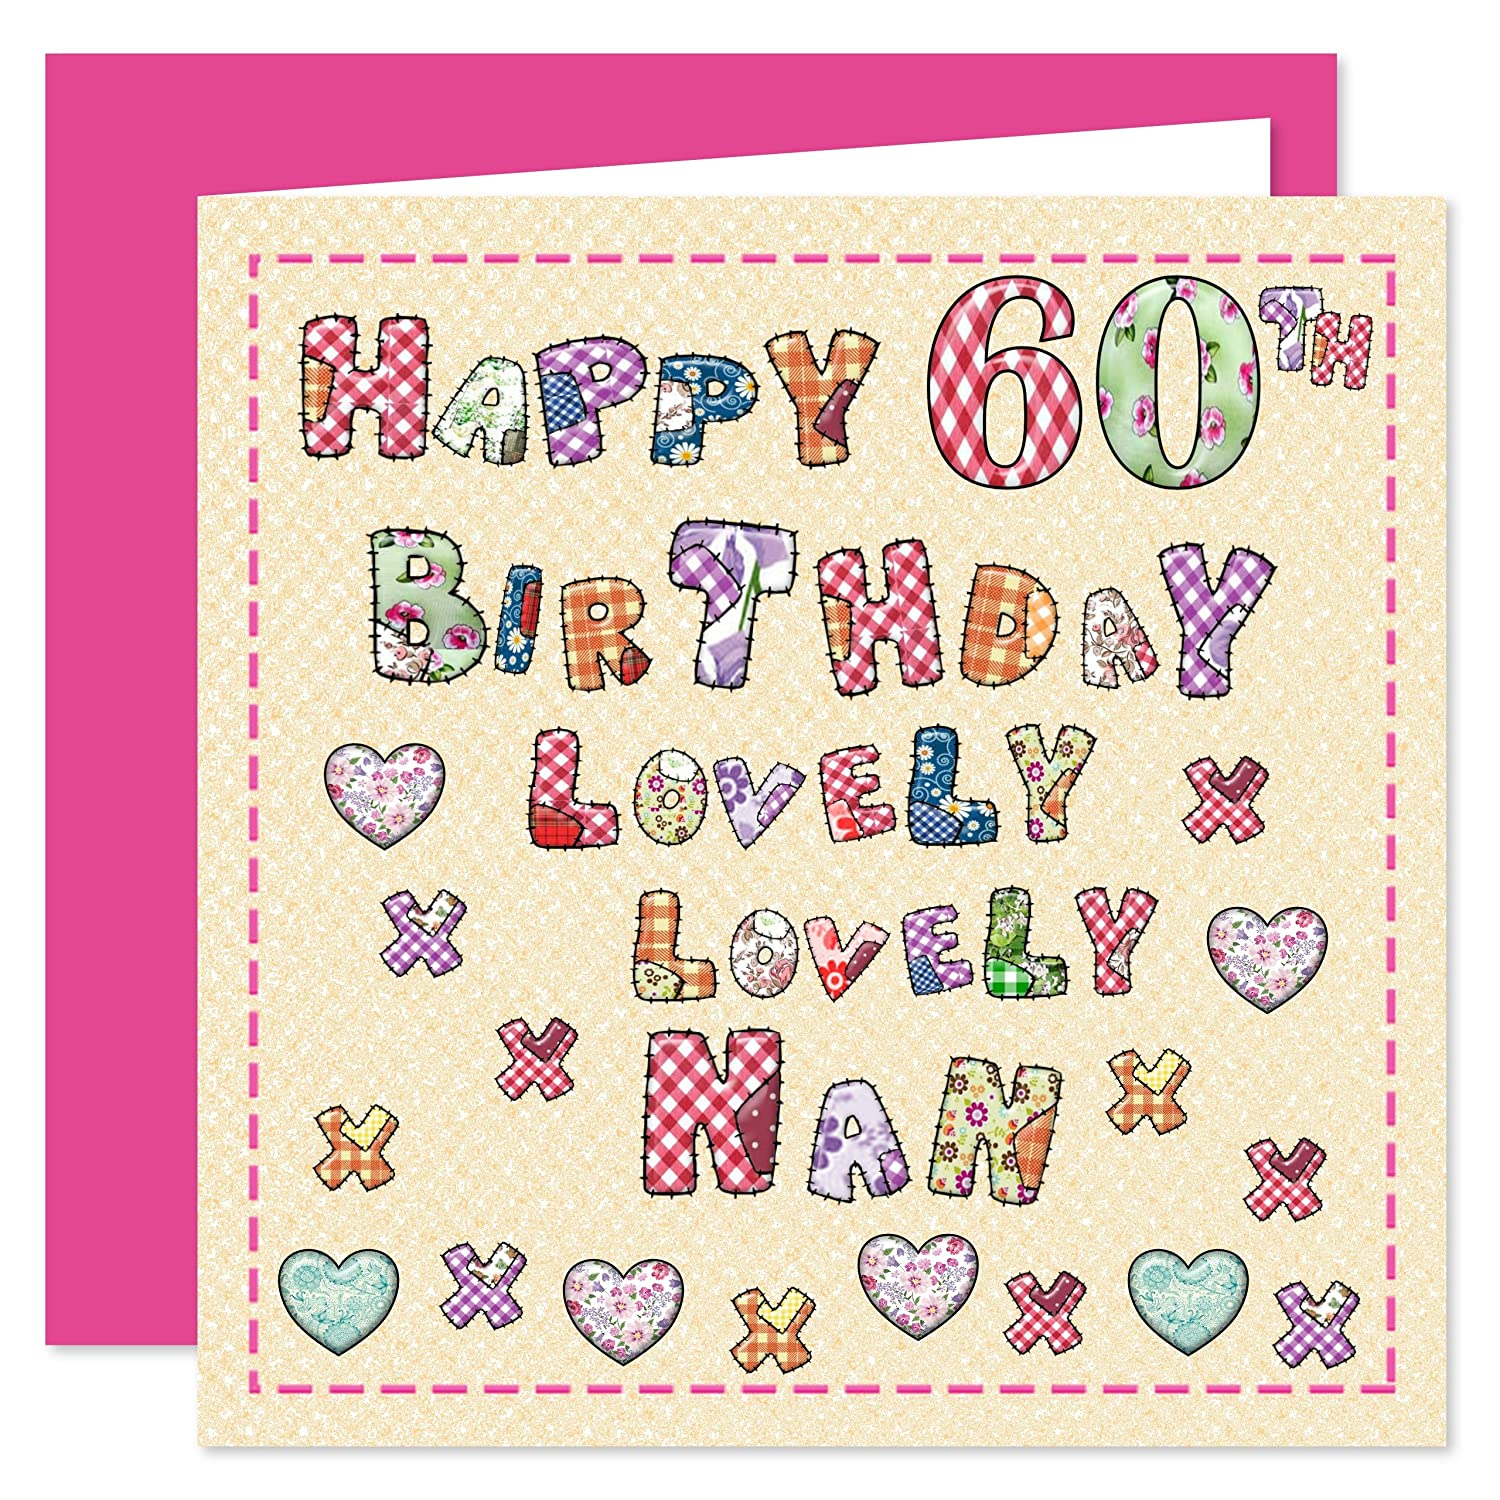 Nan 60th Happy Birthday Card